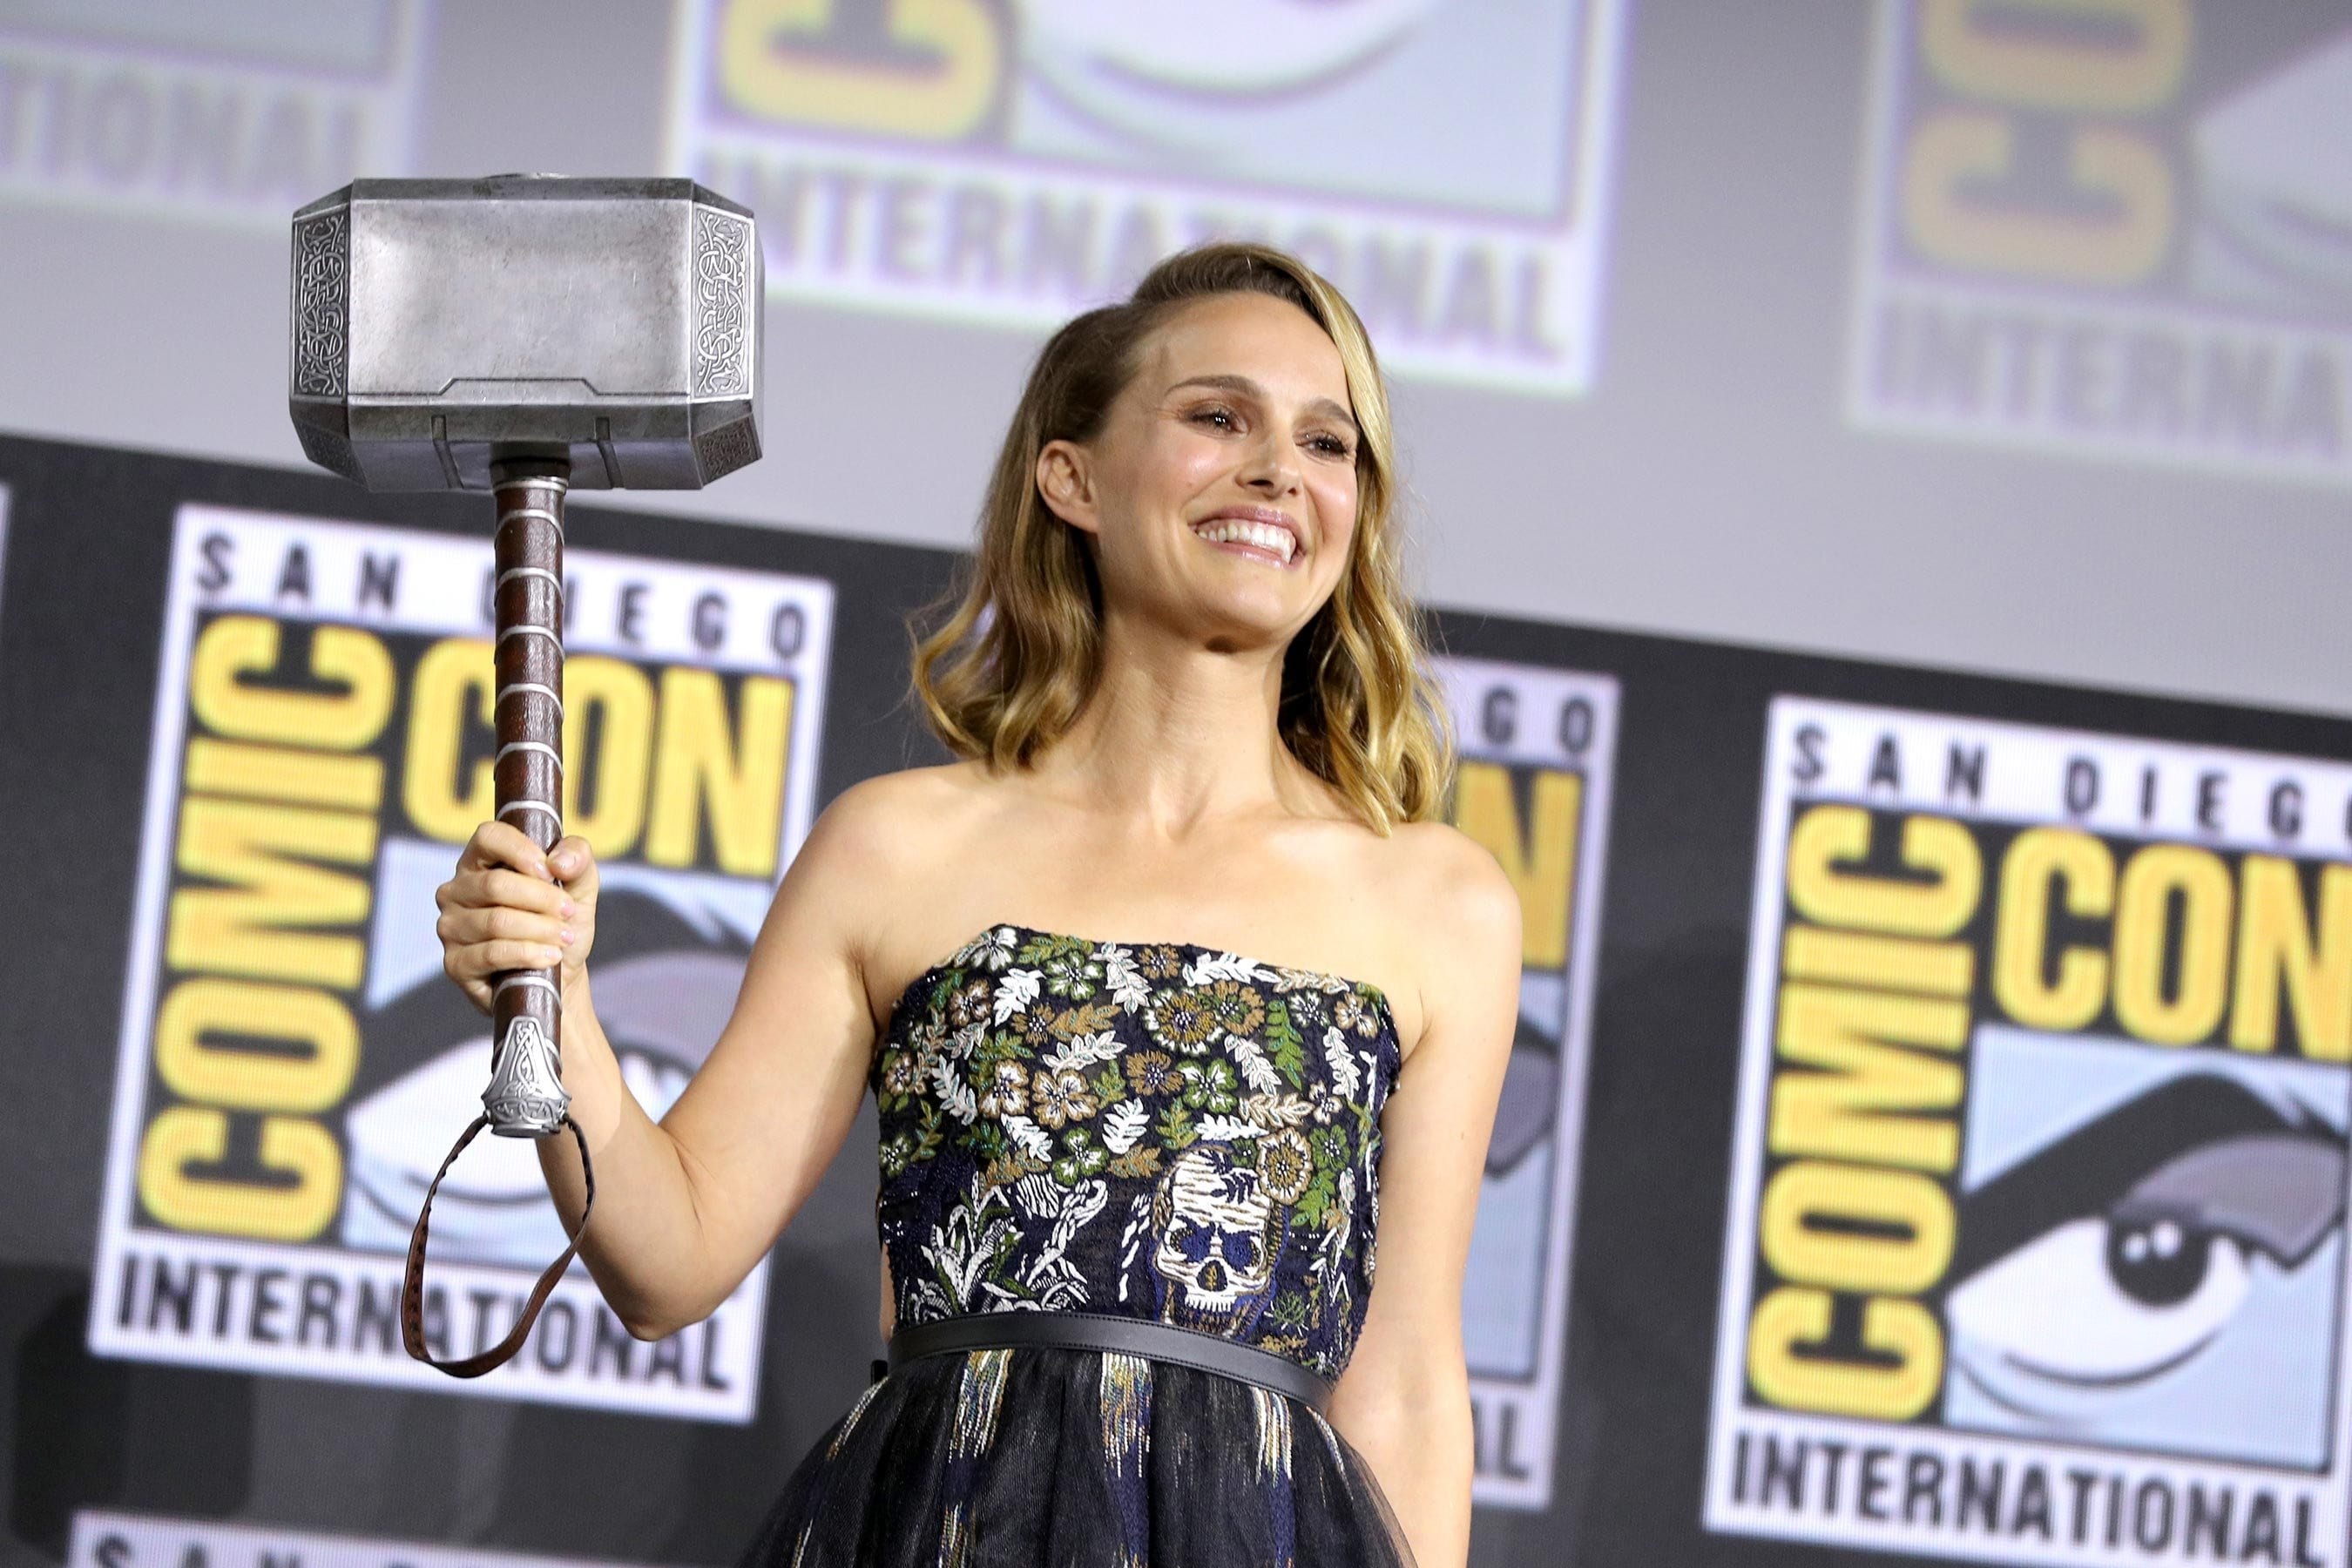 Natalie Portman, Thor: Love and Thunder